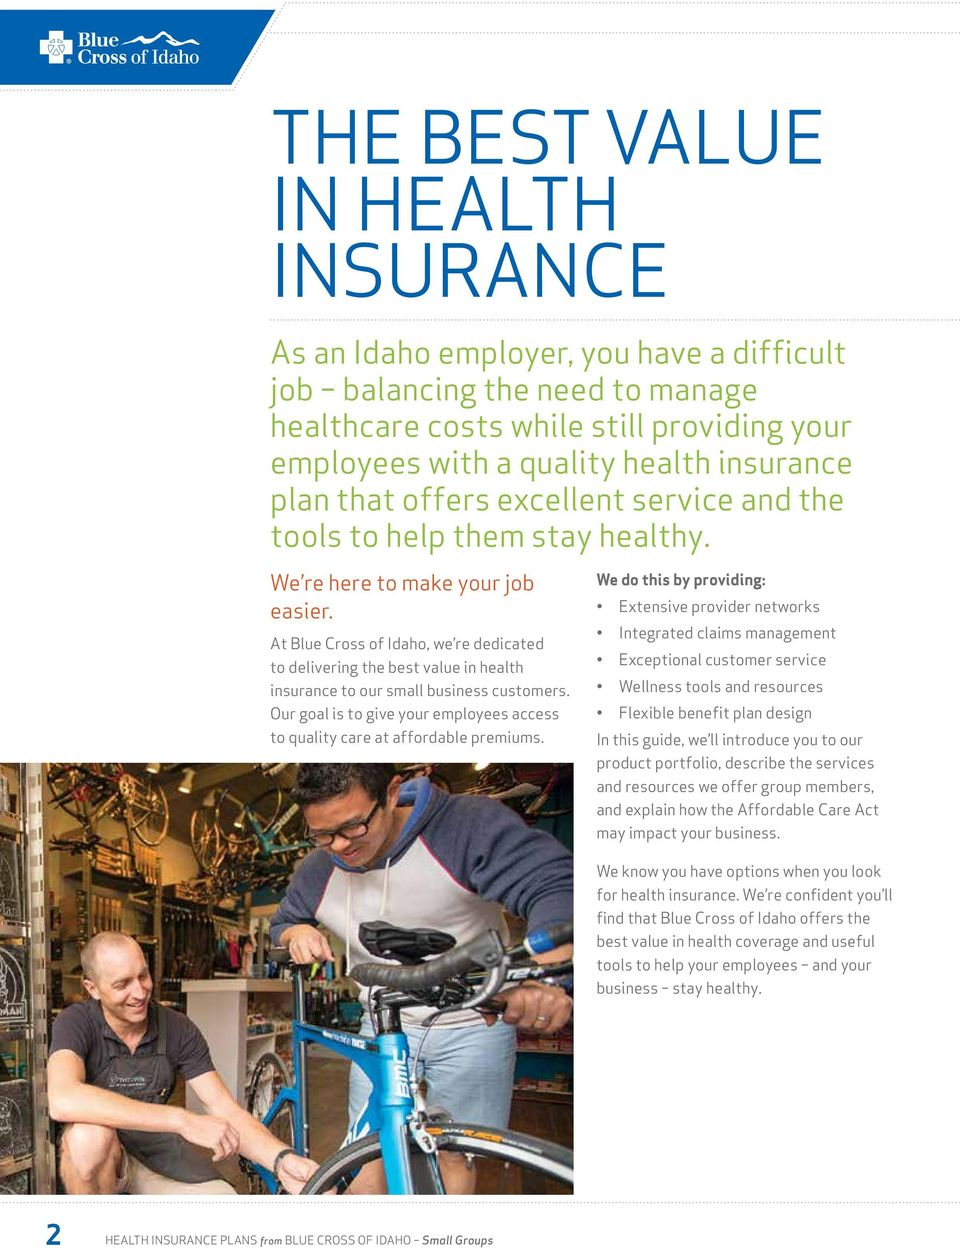 At Blue Cross of Idaho, we re dedicated to delivering the best value in health insurance to our small business customers.